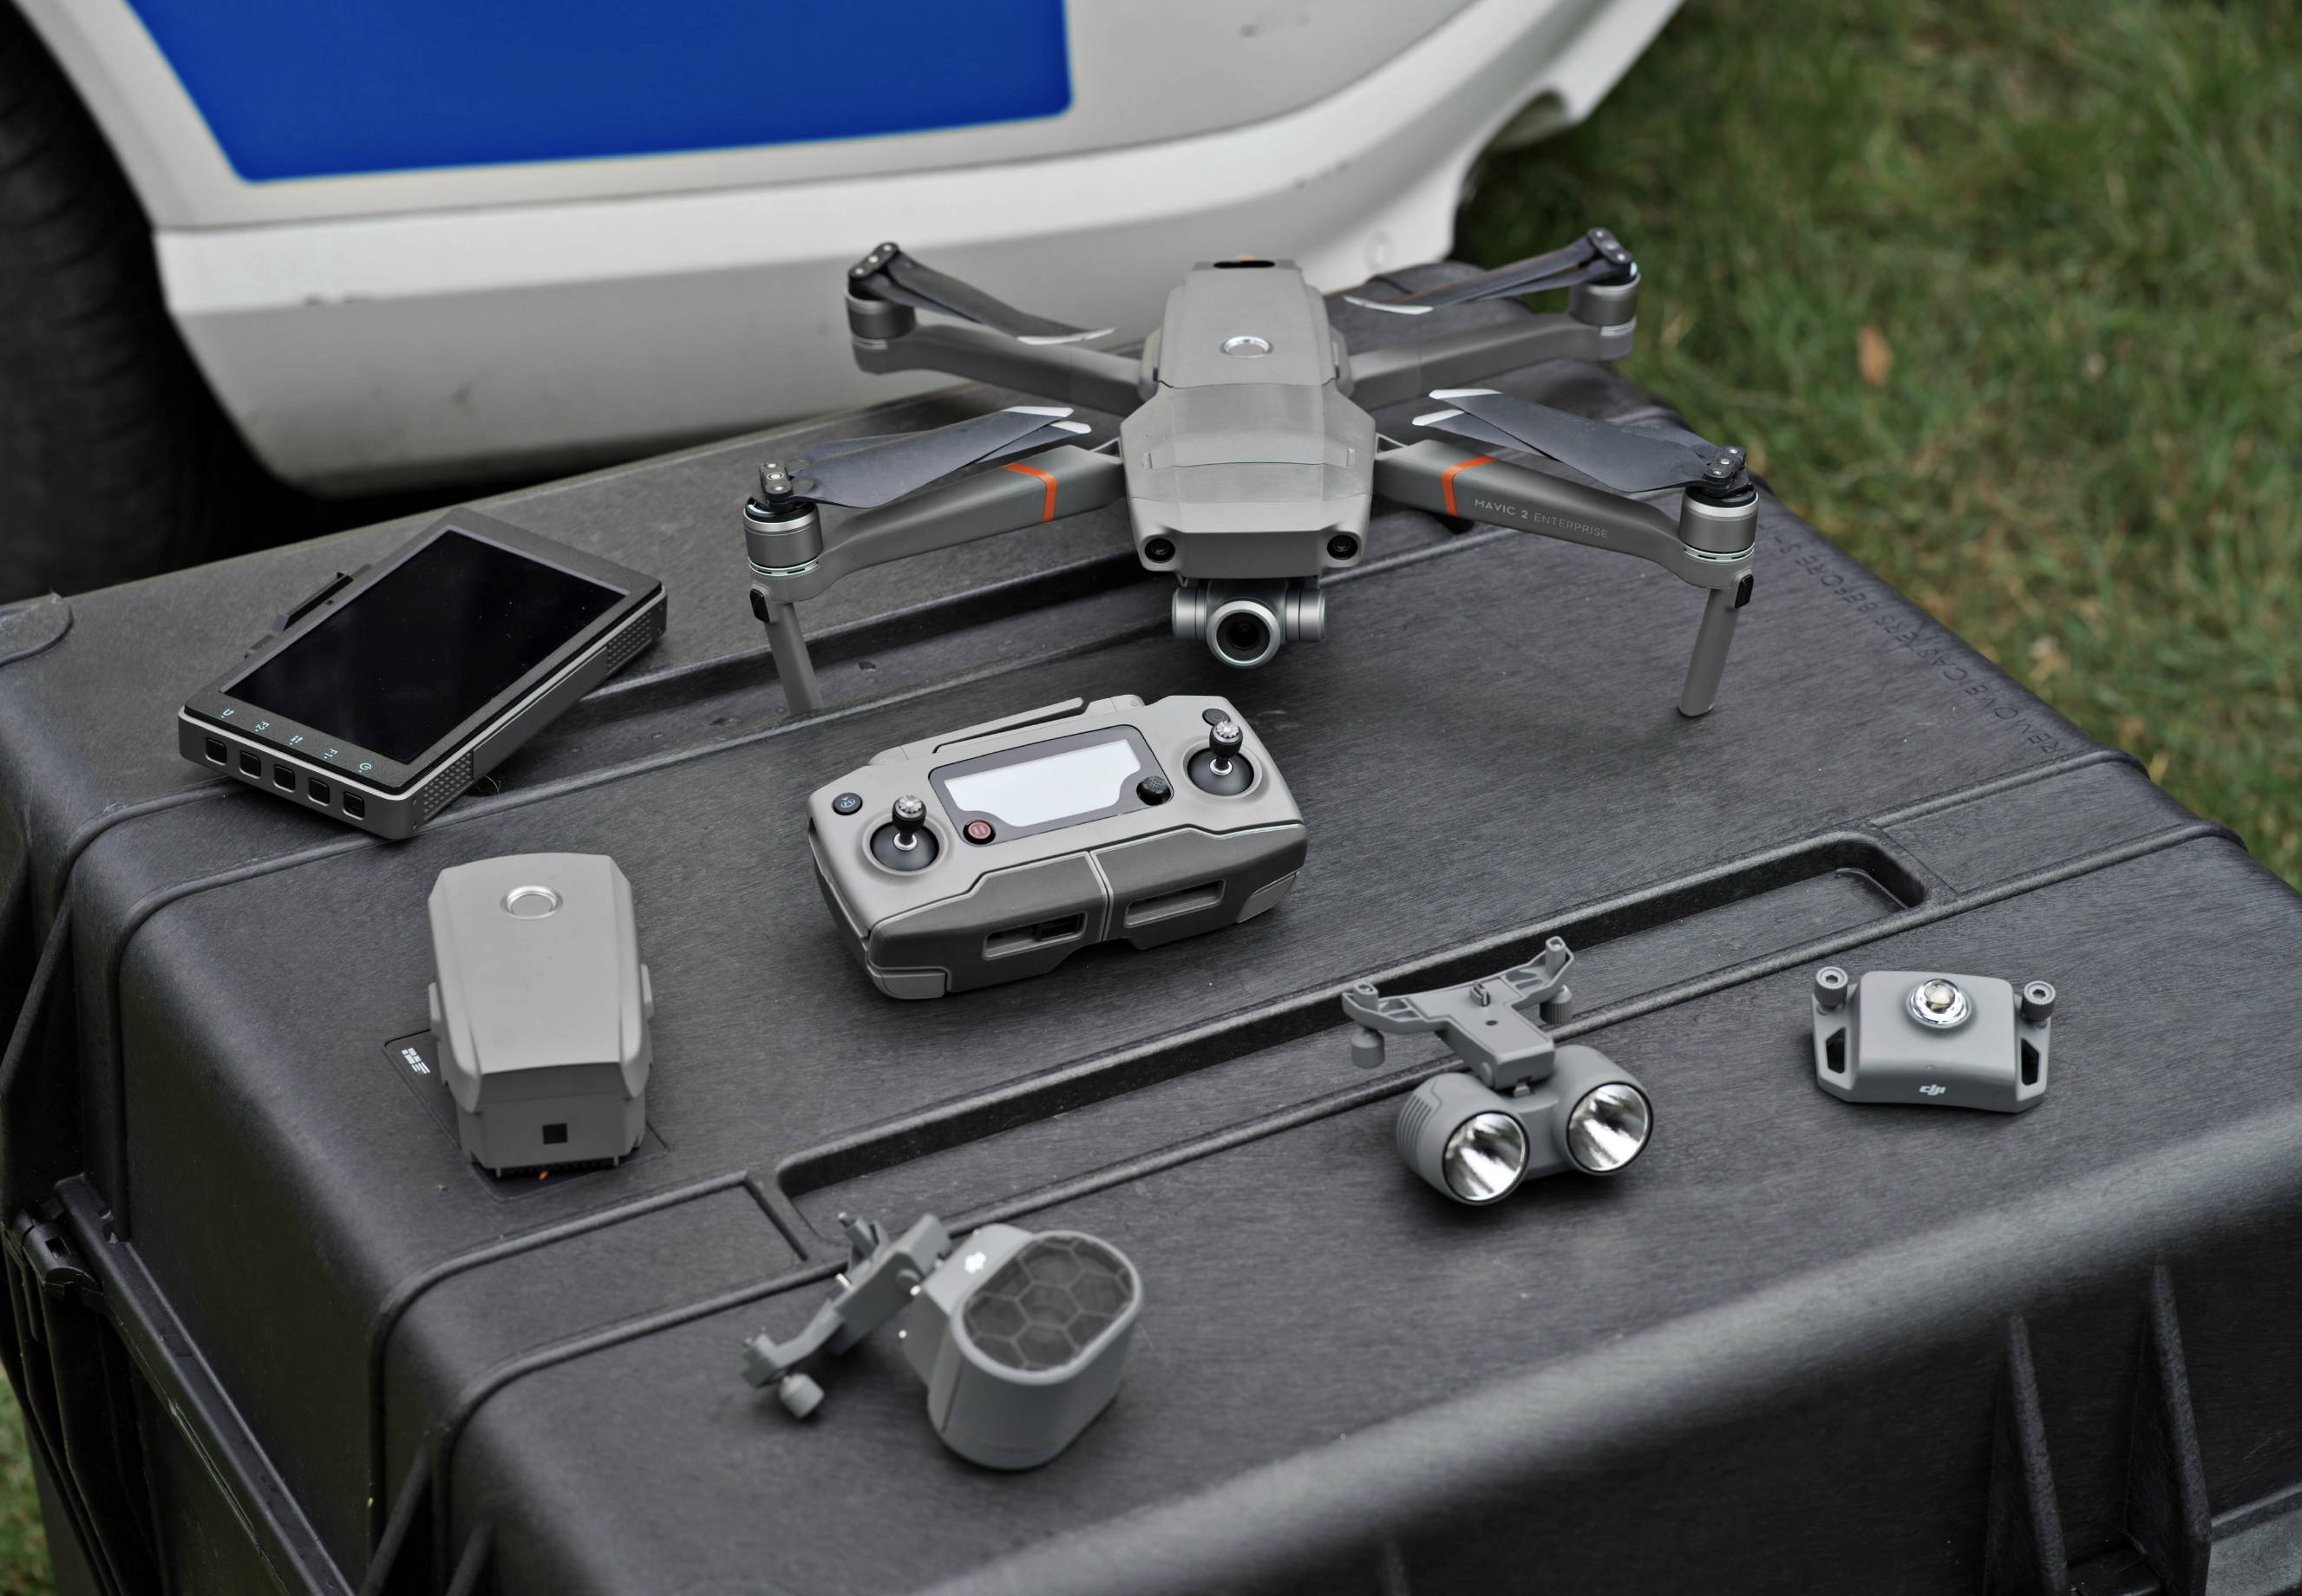 DJI Mavic 2 Enterprise Equipment